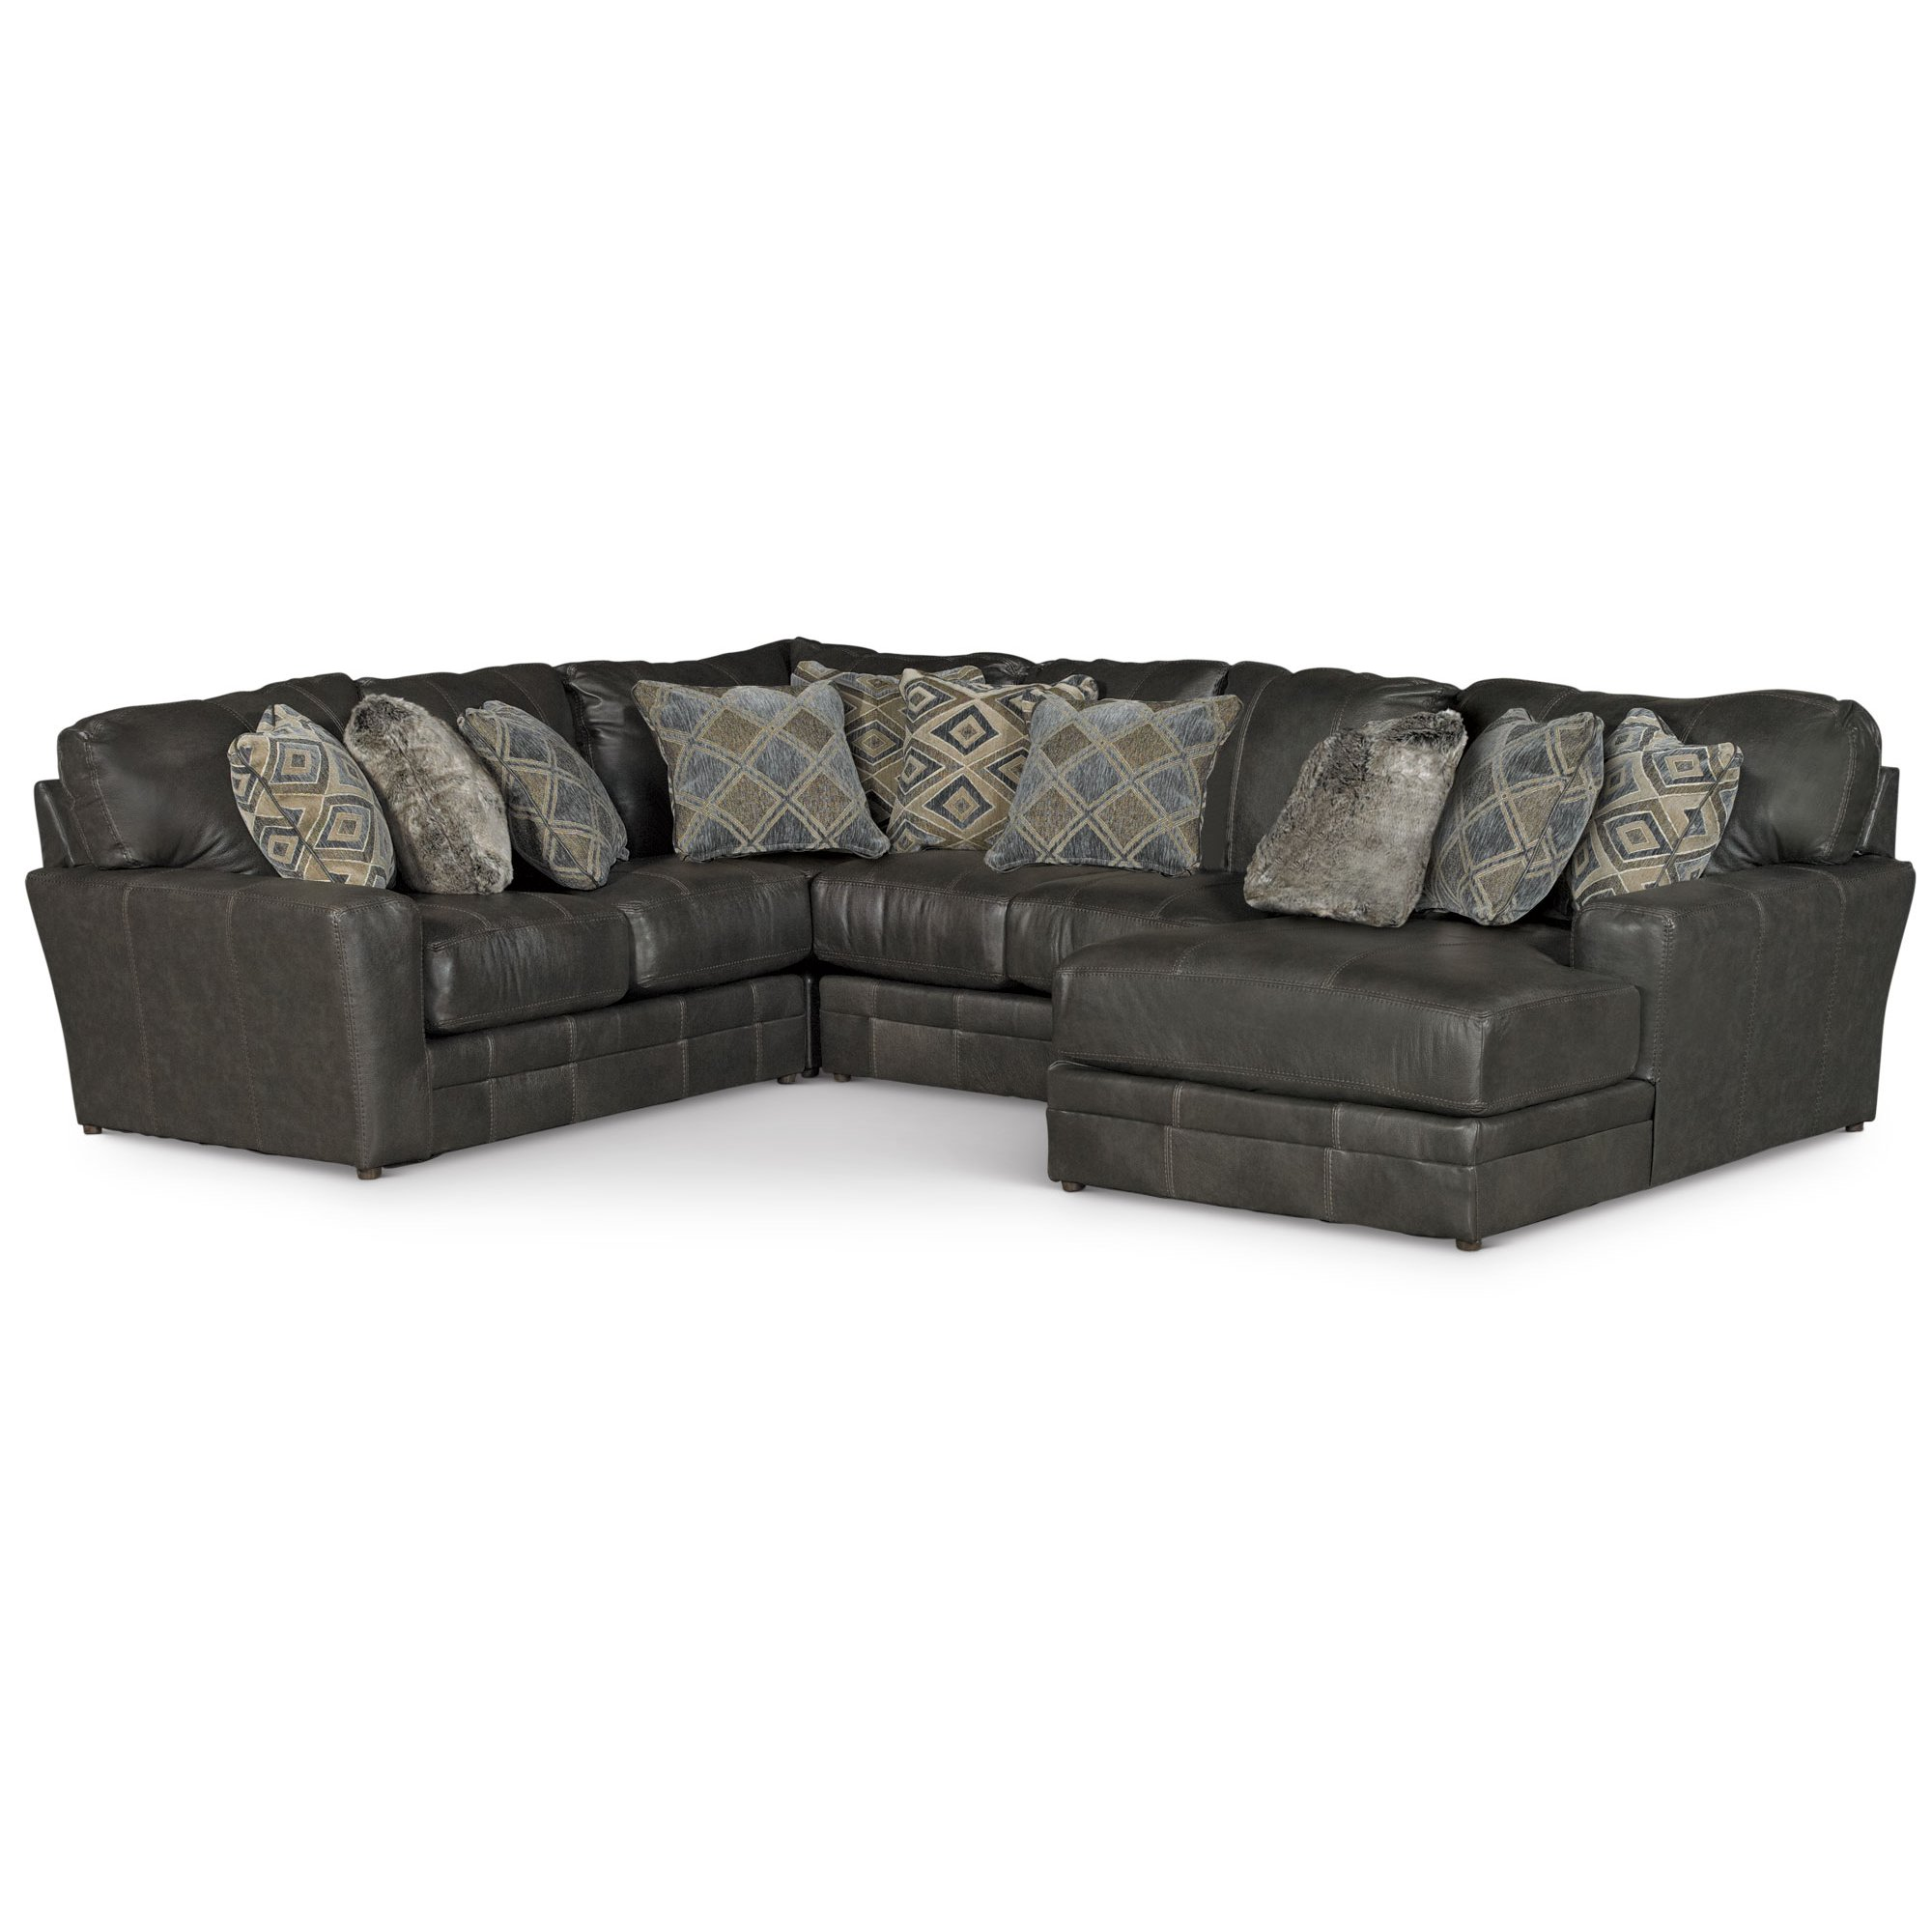 Steel Gray 4 Piece Sectional Sofa with RAF Chaise - Denali